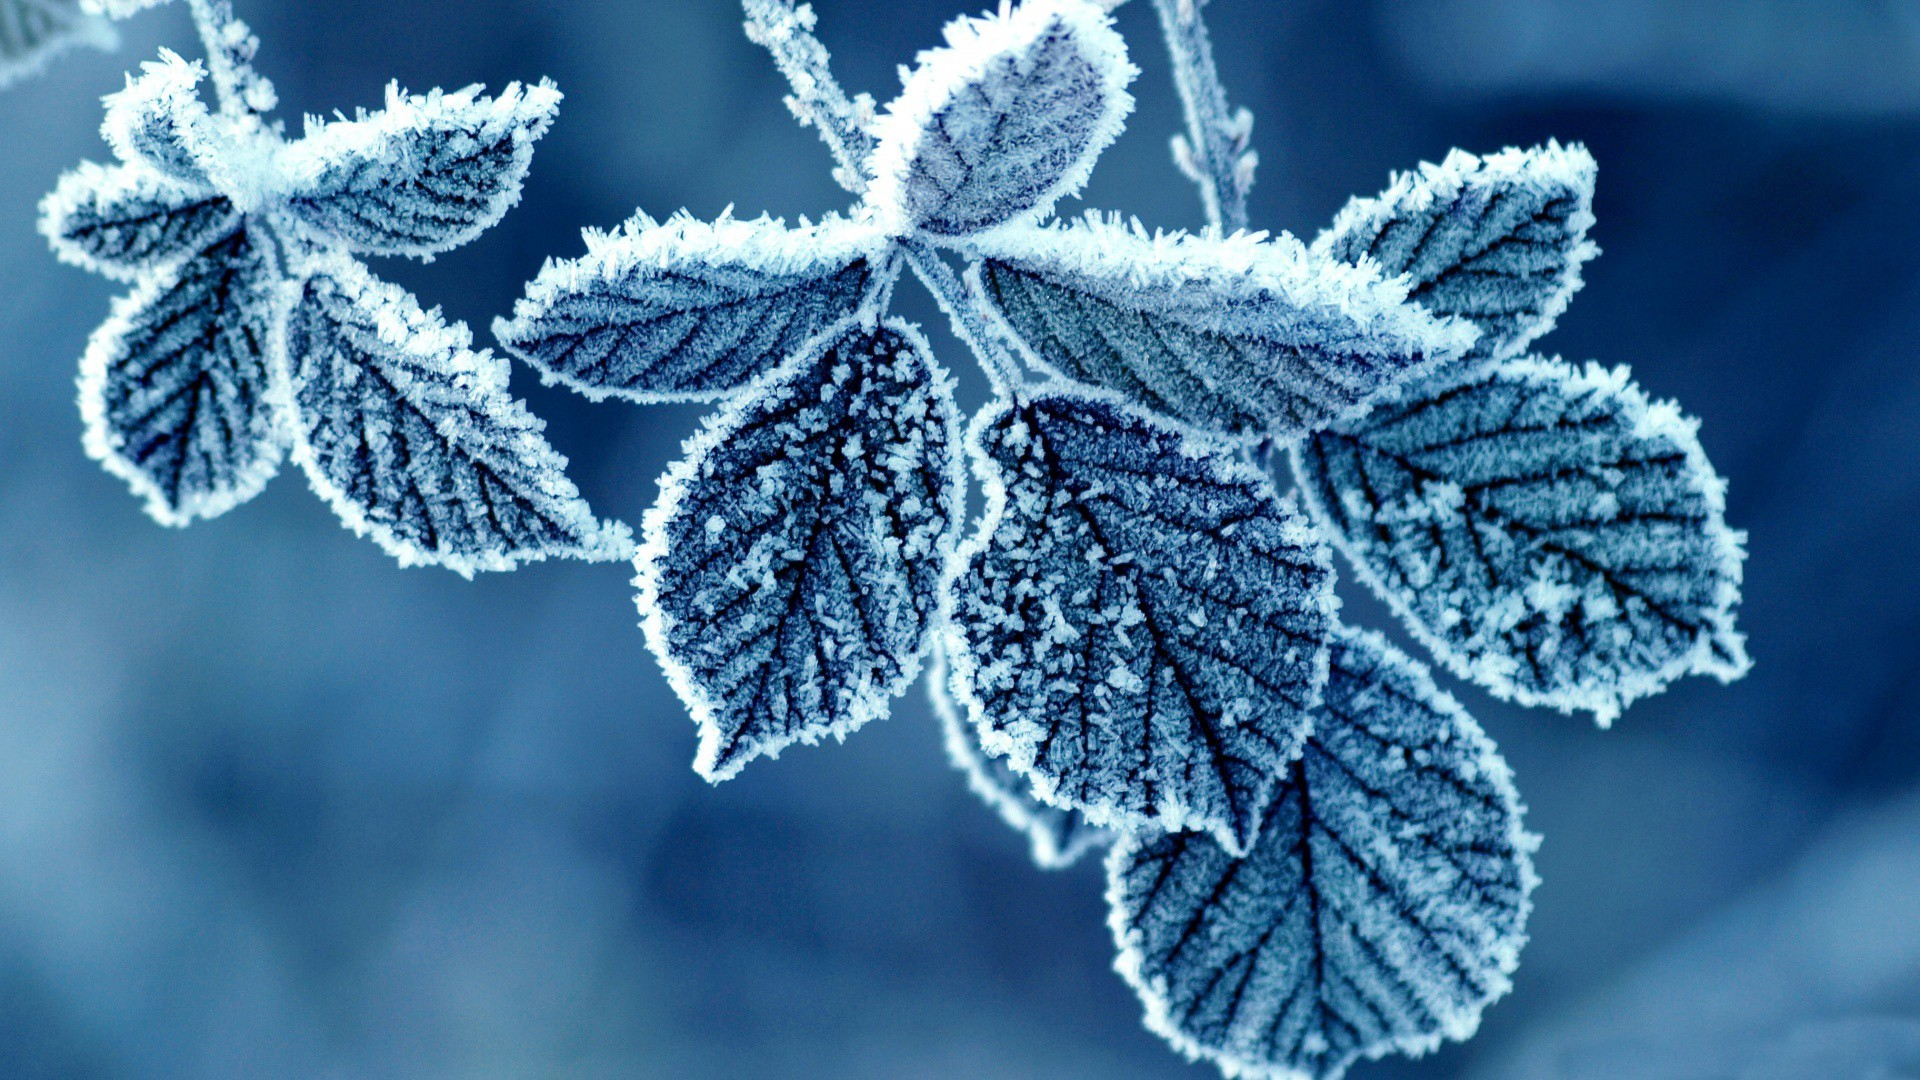 Download mobile wallpaper Winter, Background, Leaves, Snow for free.